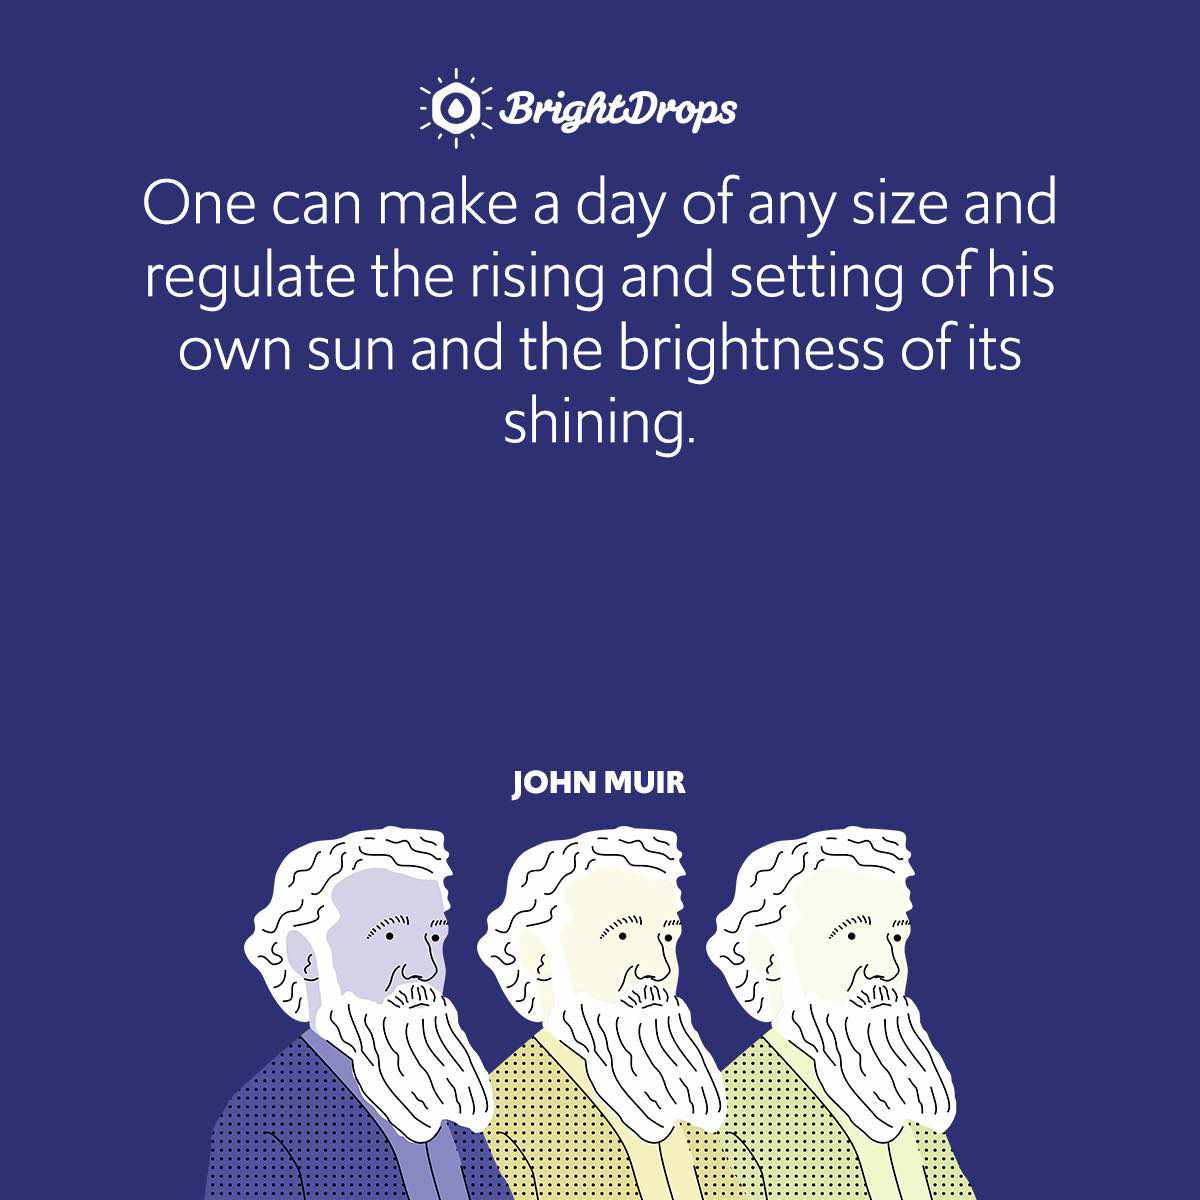 One can make a day of any size and regulate the rising and setting of his own sun and the brightness of its shining.